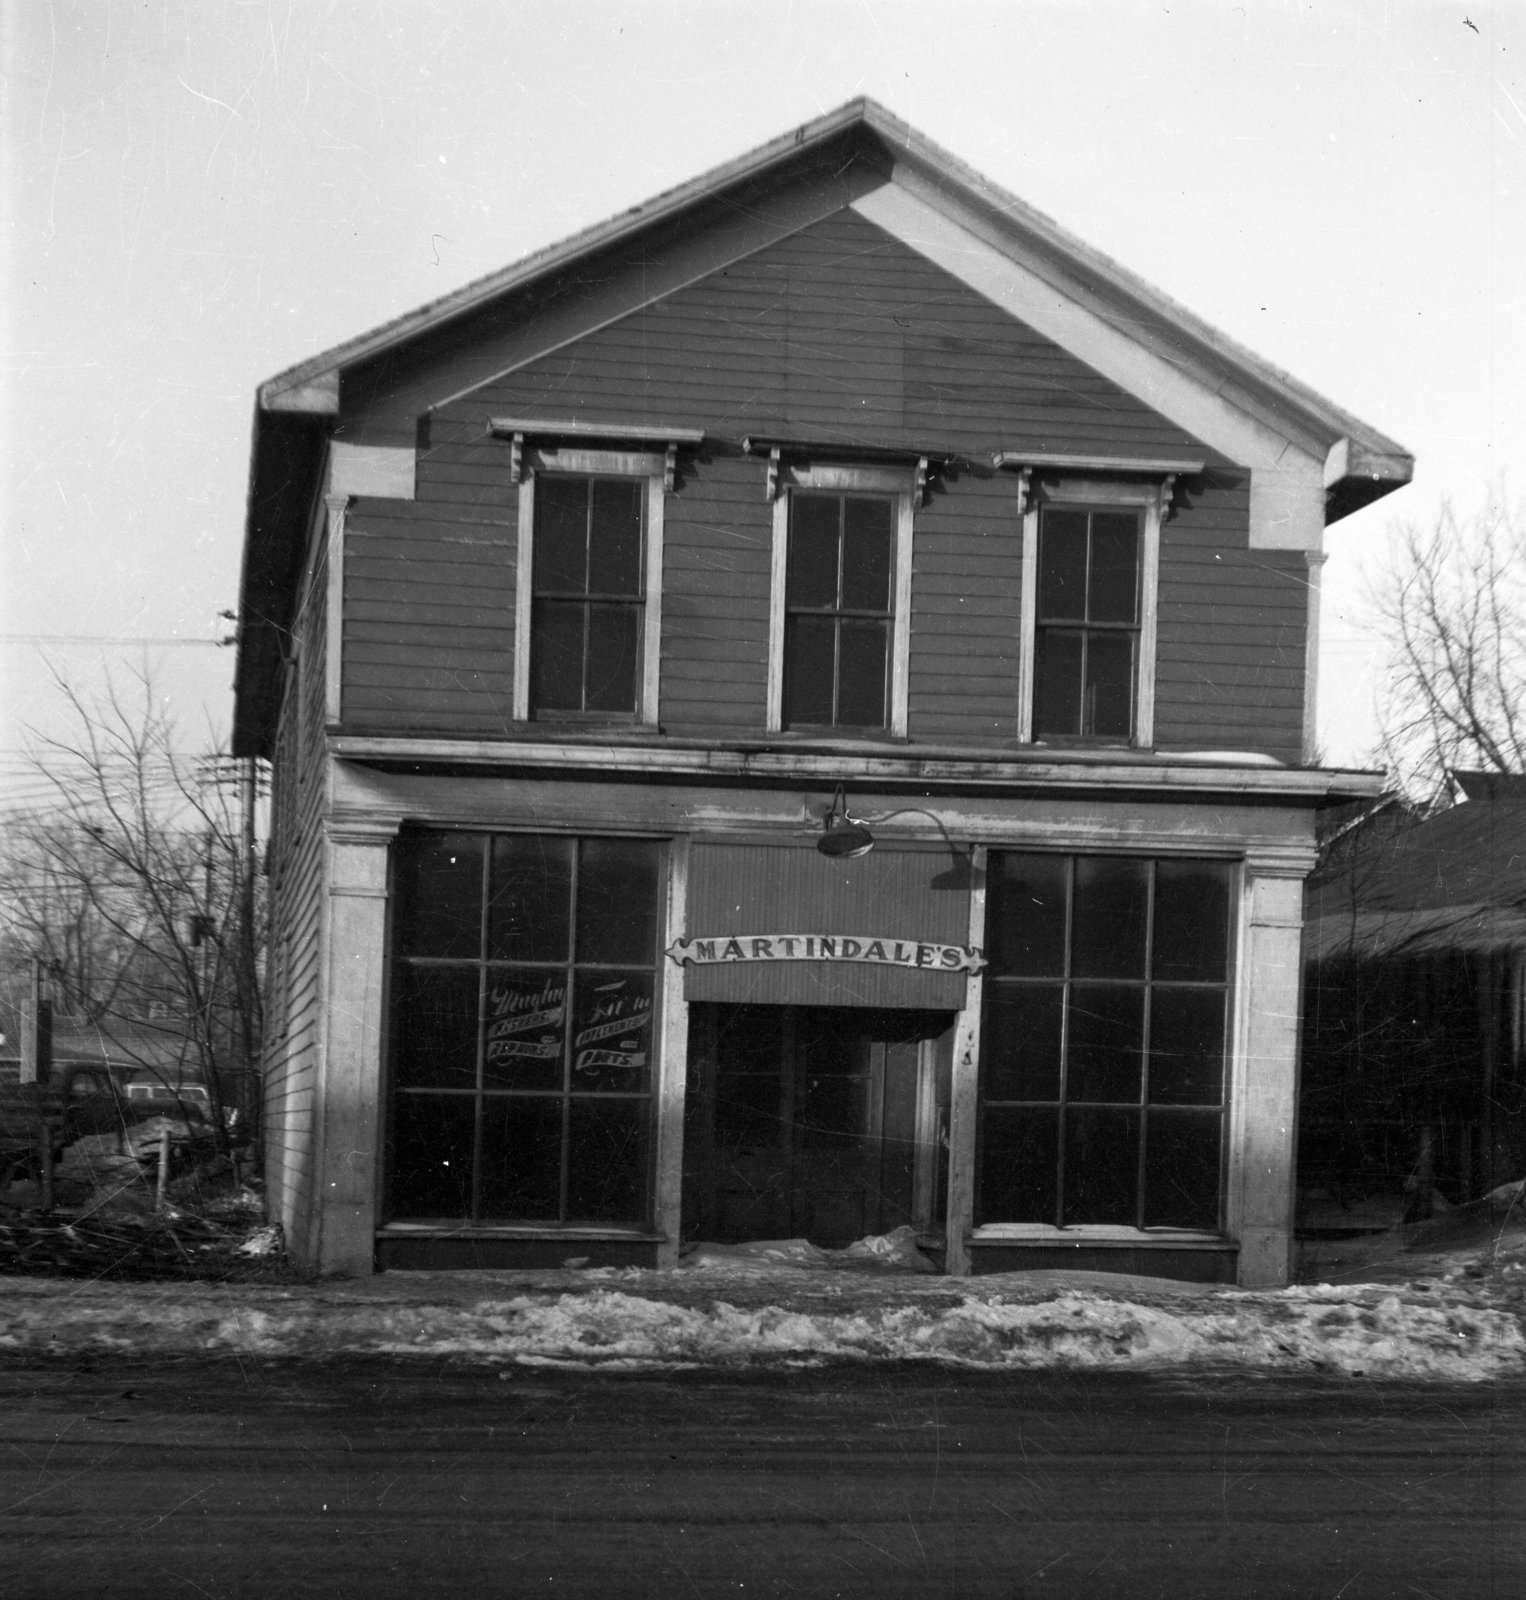 Martindale's Store